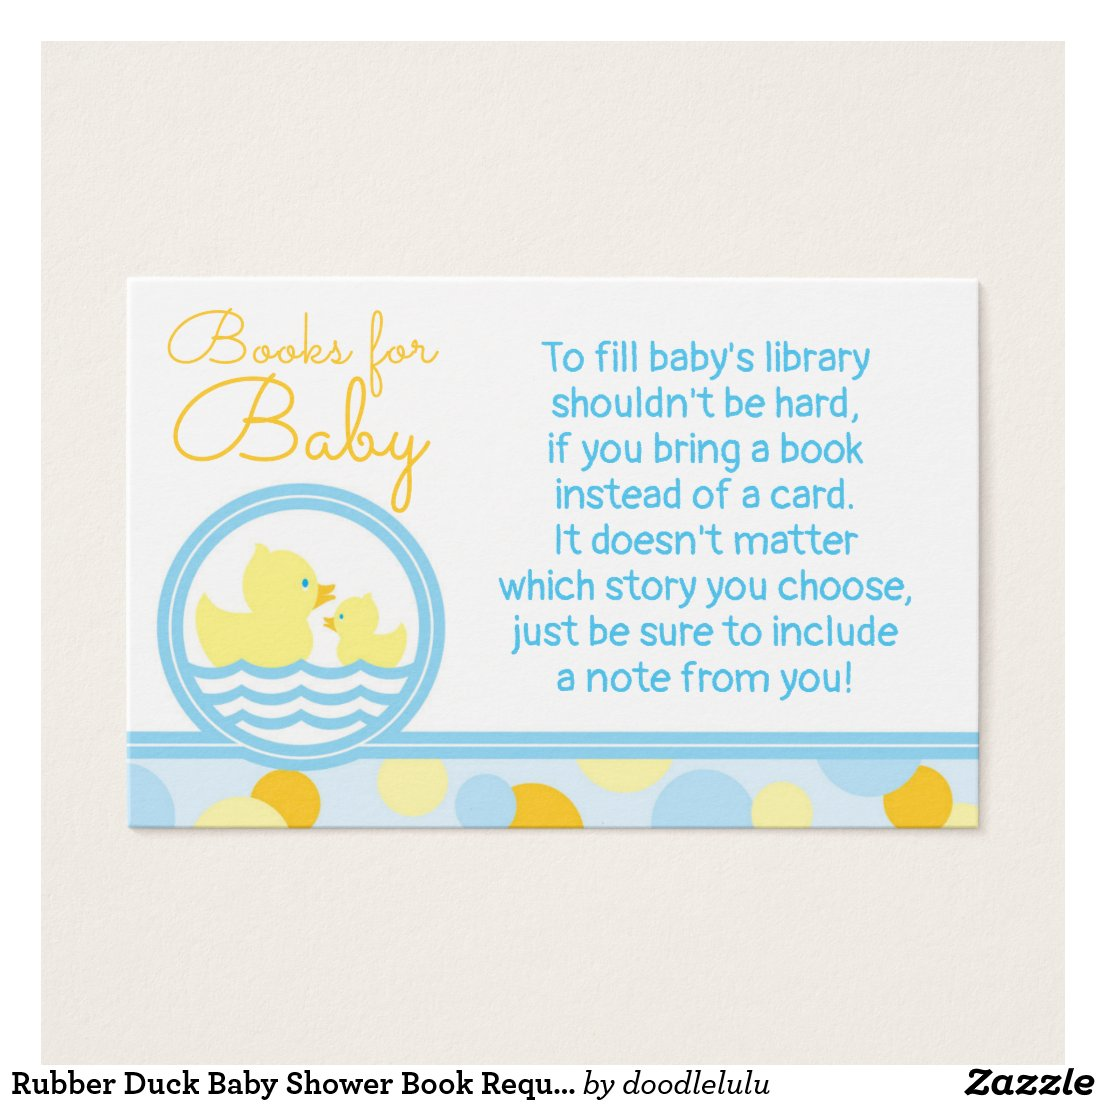 Rubber Duck Baby Shower Book Request Card